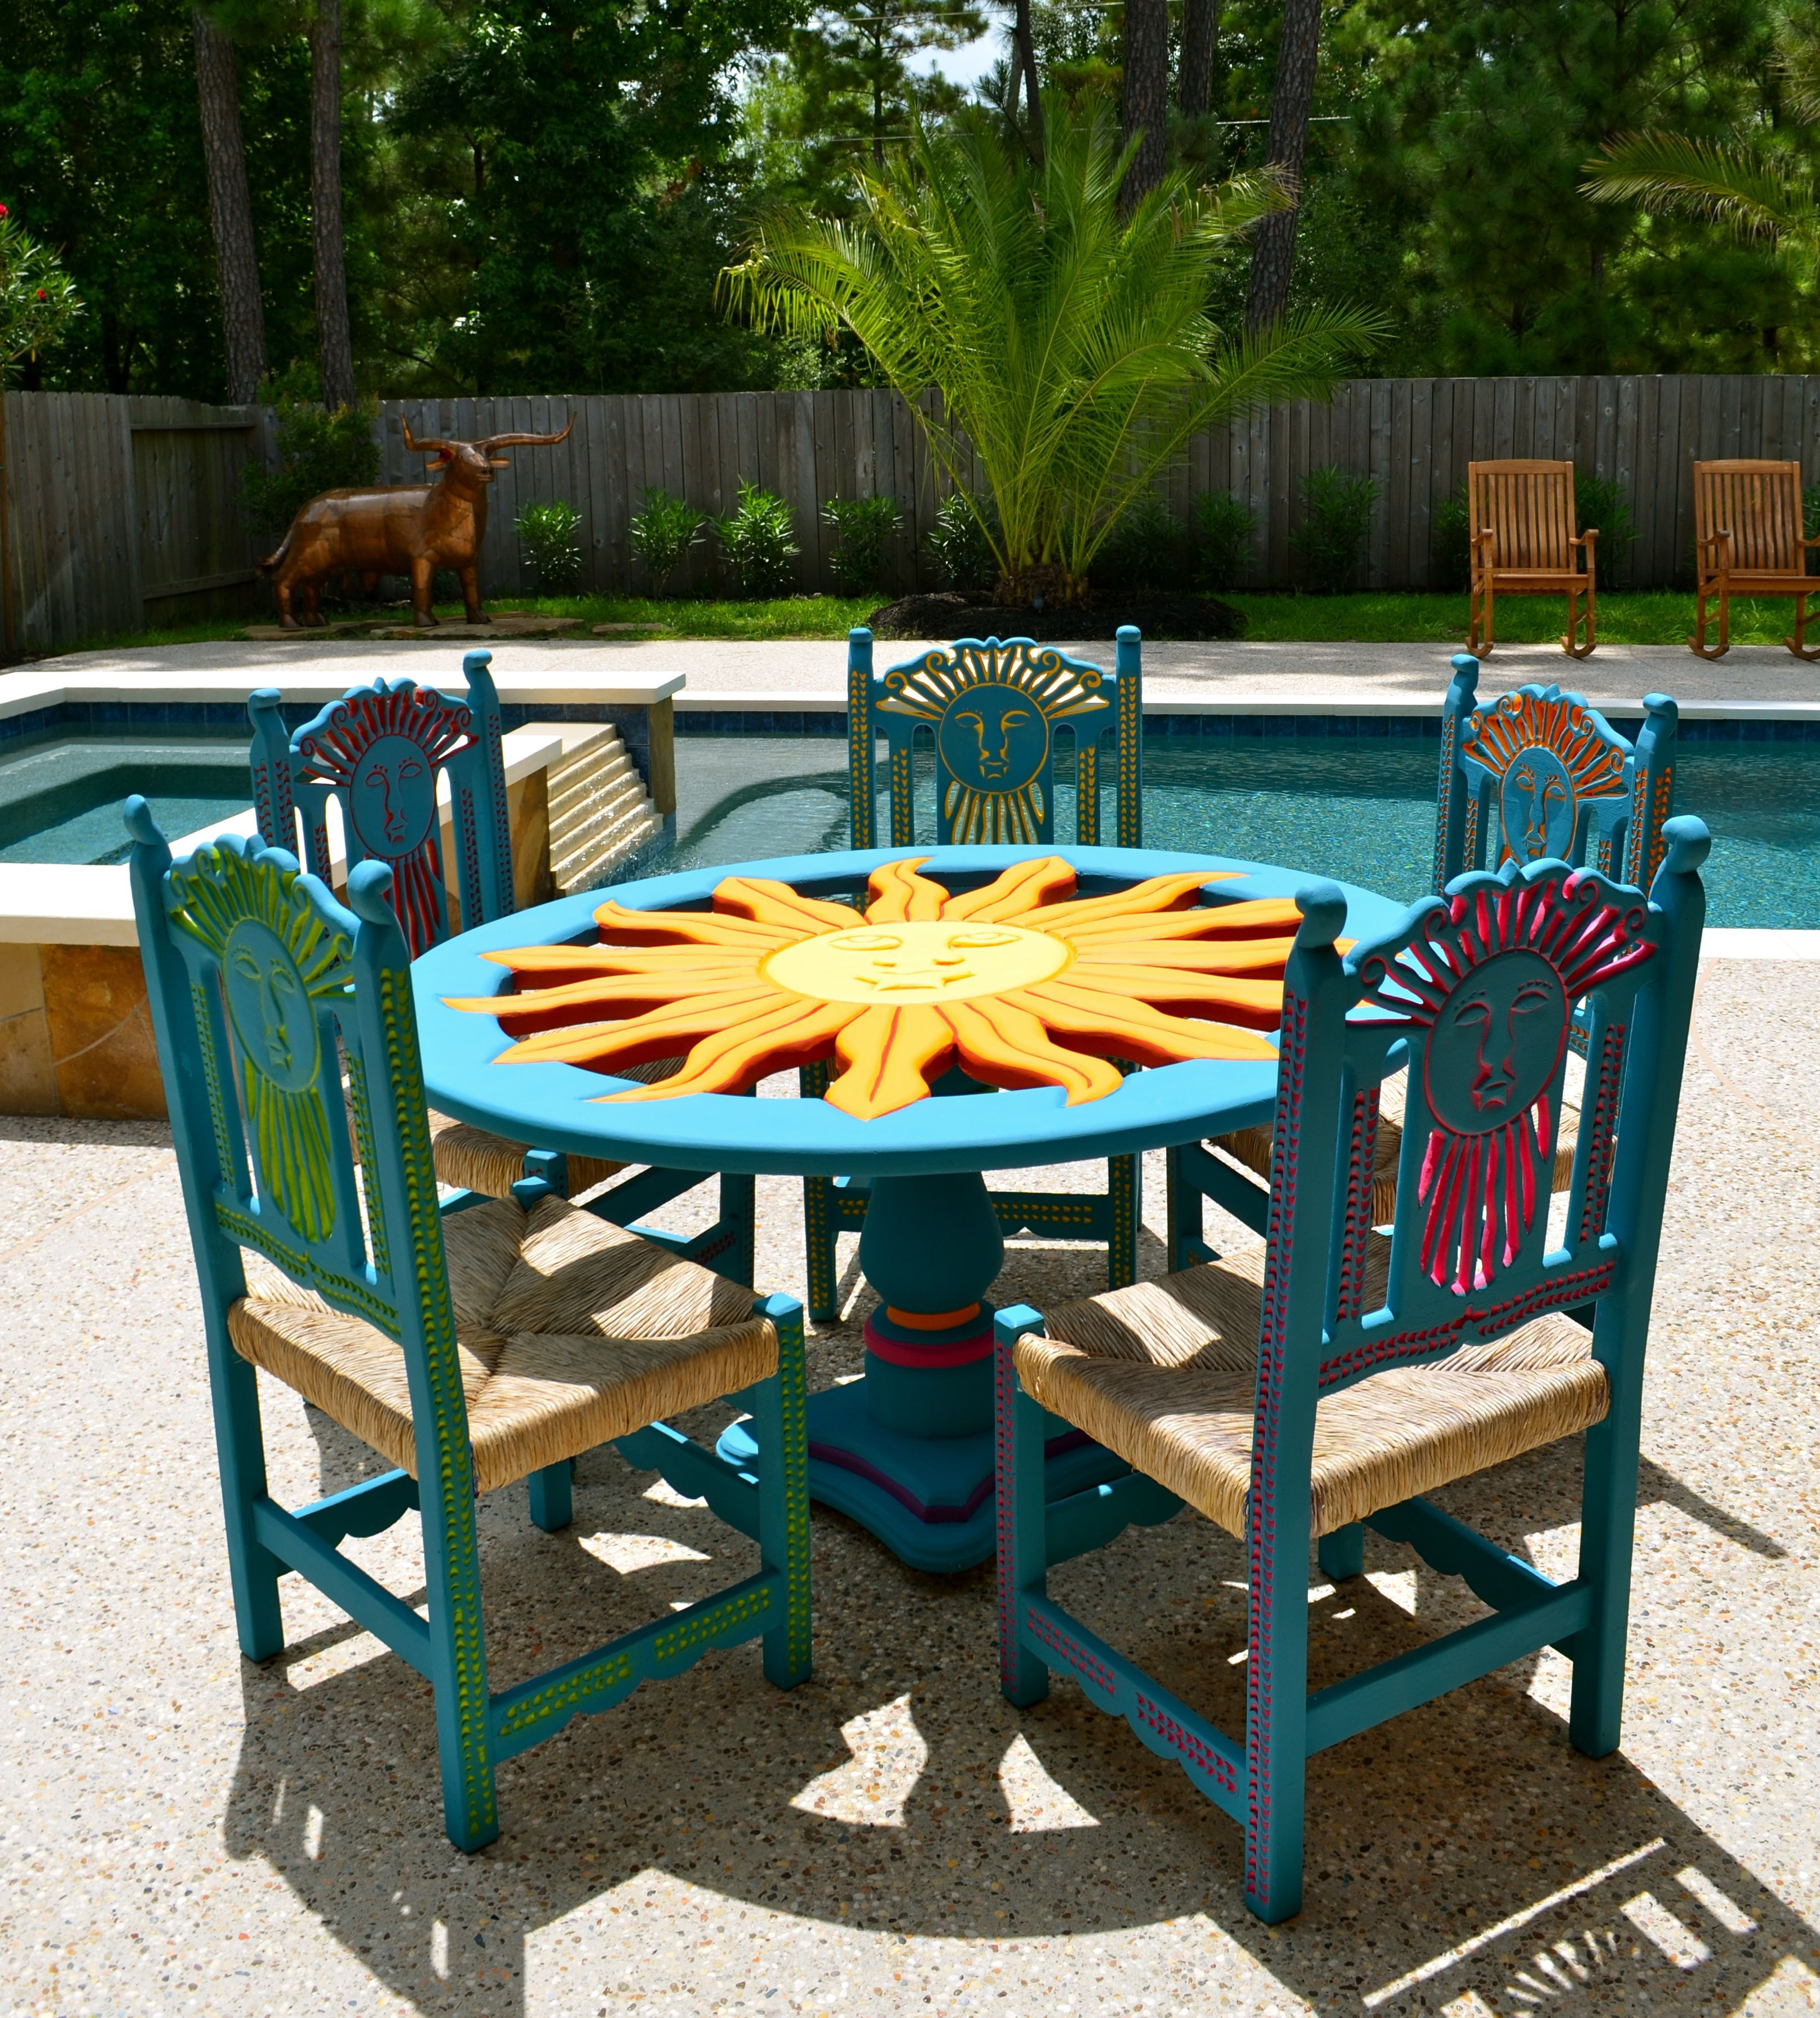 Pin by Carrie Burton on Southwestern Country Design Ideas ... on Mexican Patio Ideas  id=89043